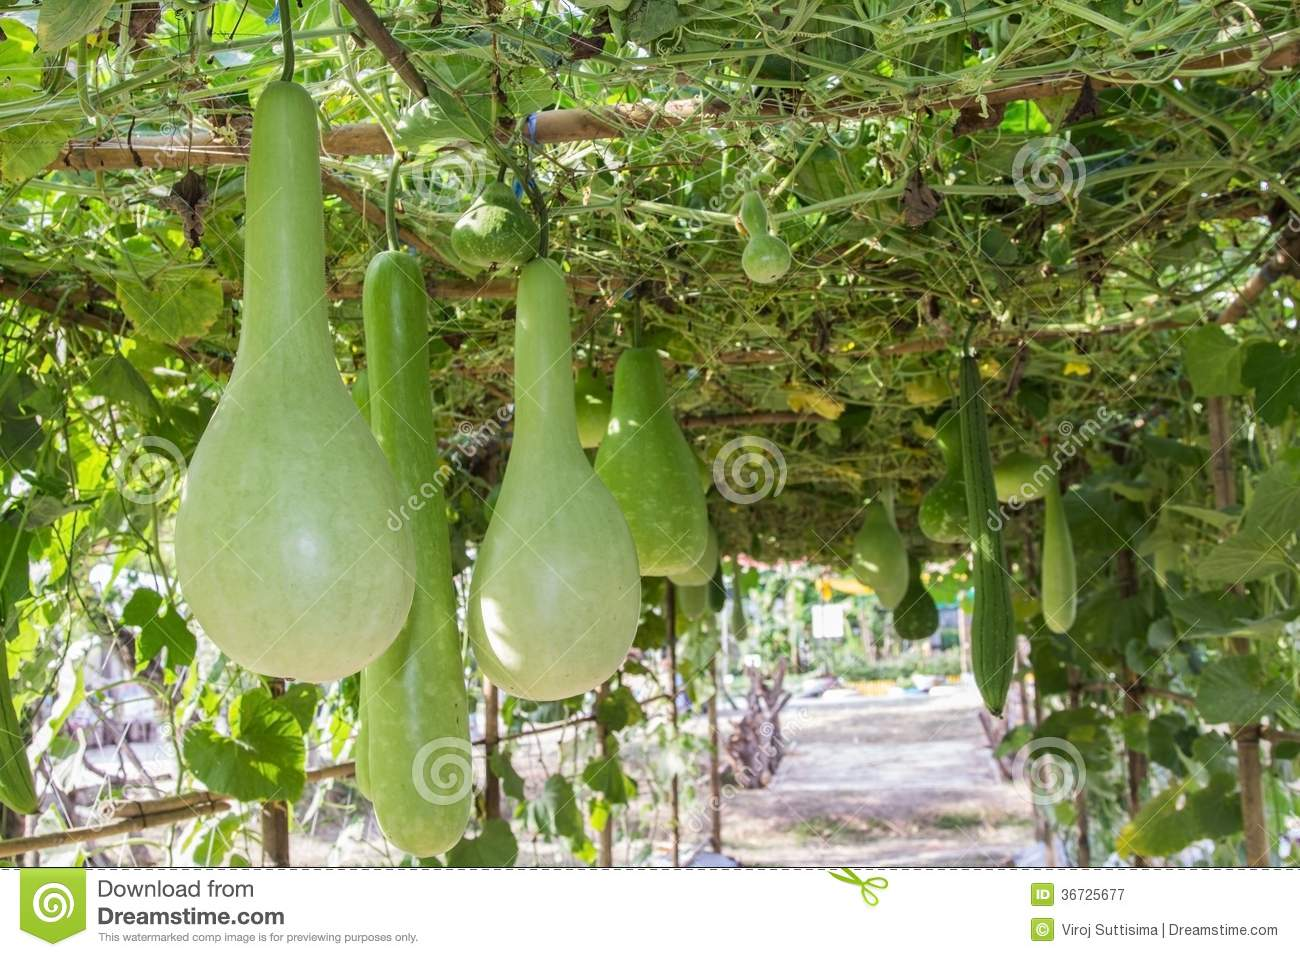 Green Bottle Gourd Hanging On Vine. Royalty Free Stock Photography.